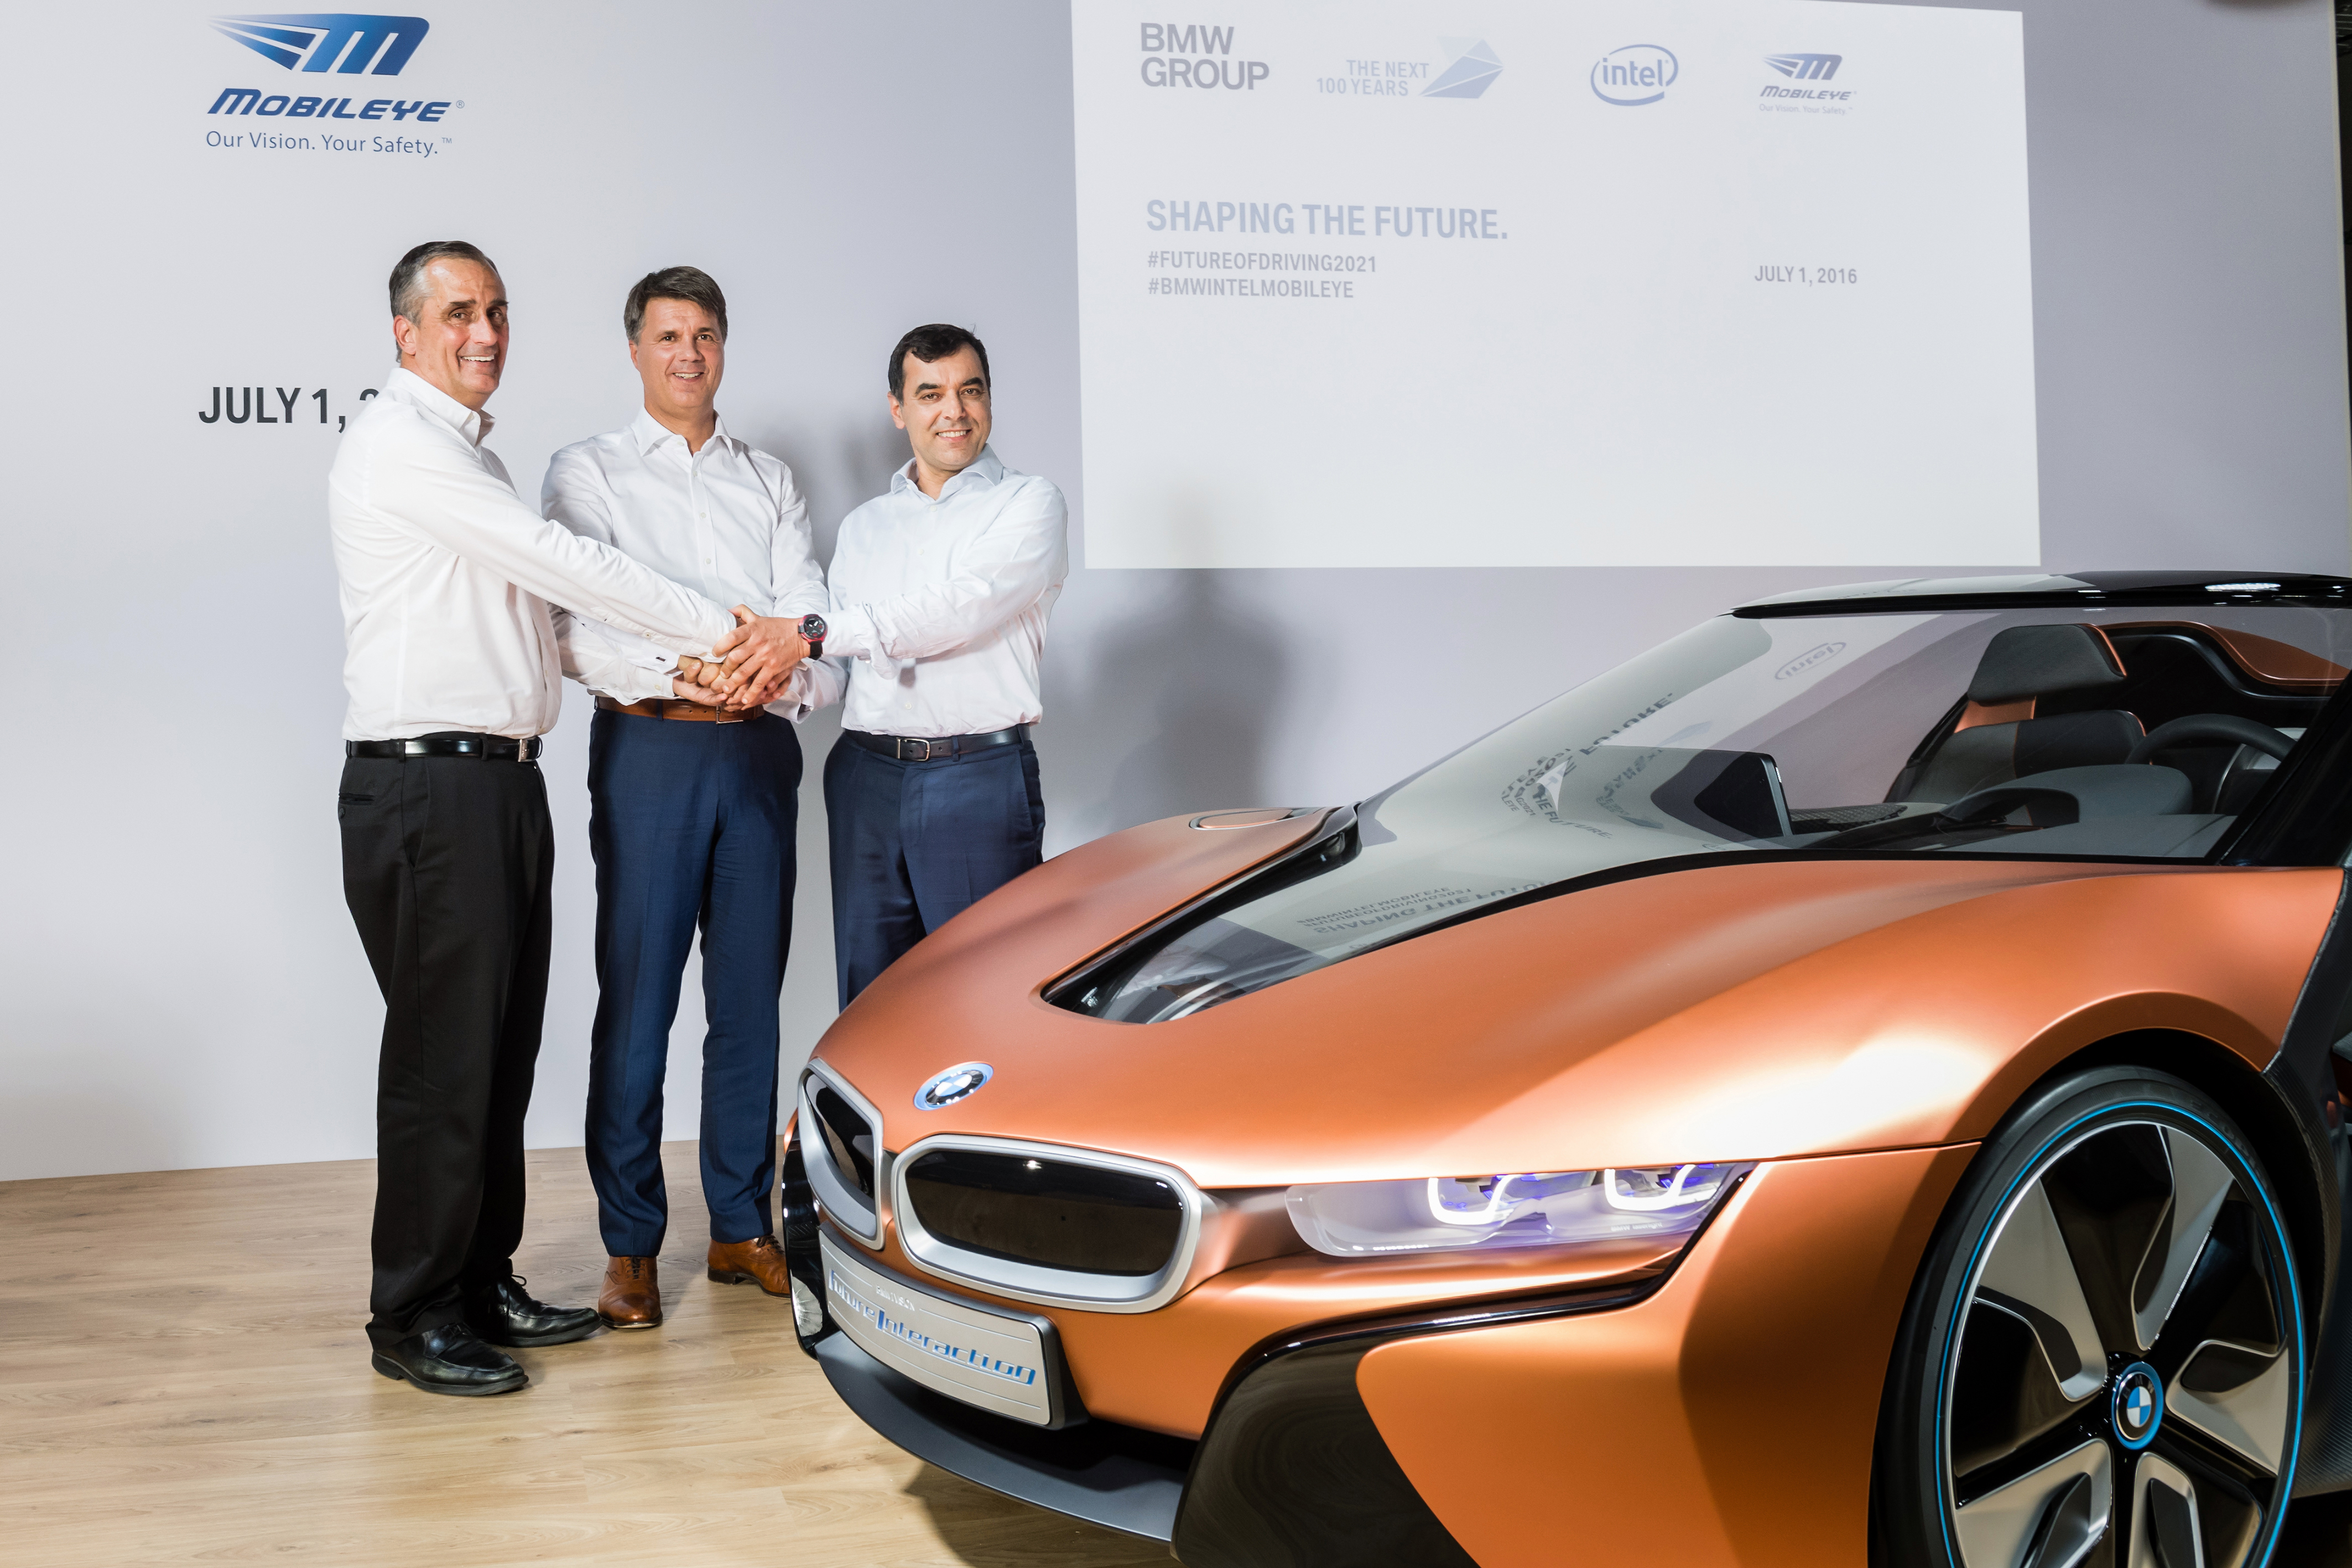 Adding Multimedia Bmw Group Intel And Mobileye Team Up To Bring